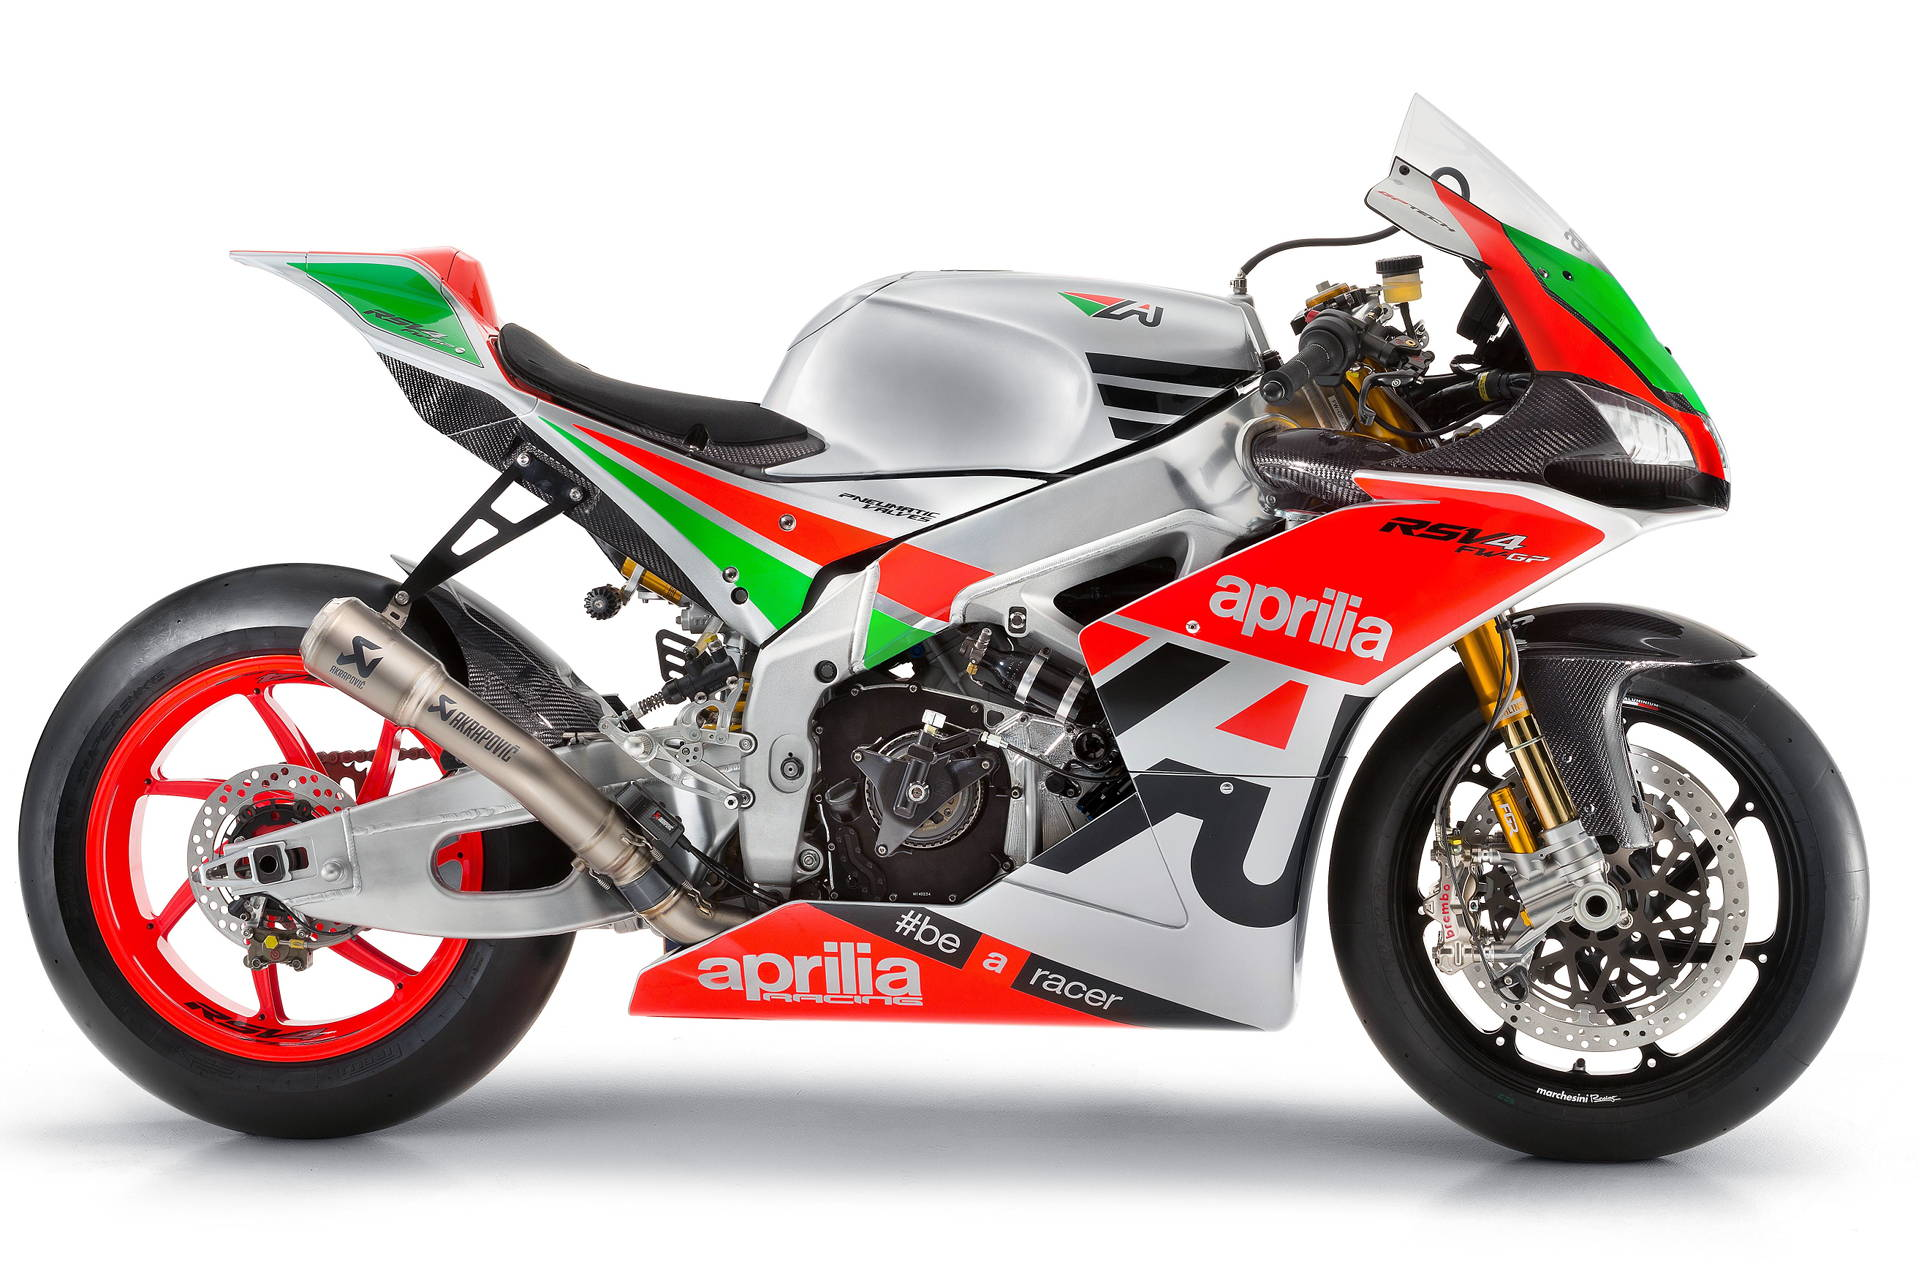 Factory Race Bikes For The Masses Aprilia Announces Works Sxv Wiring Harness Did You Know That Could Buy A Bike Direct From Thats Right An Rsv4 Superbike Kitted Out To Mimic World Superstock